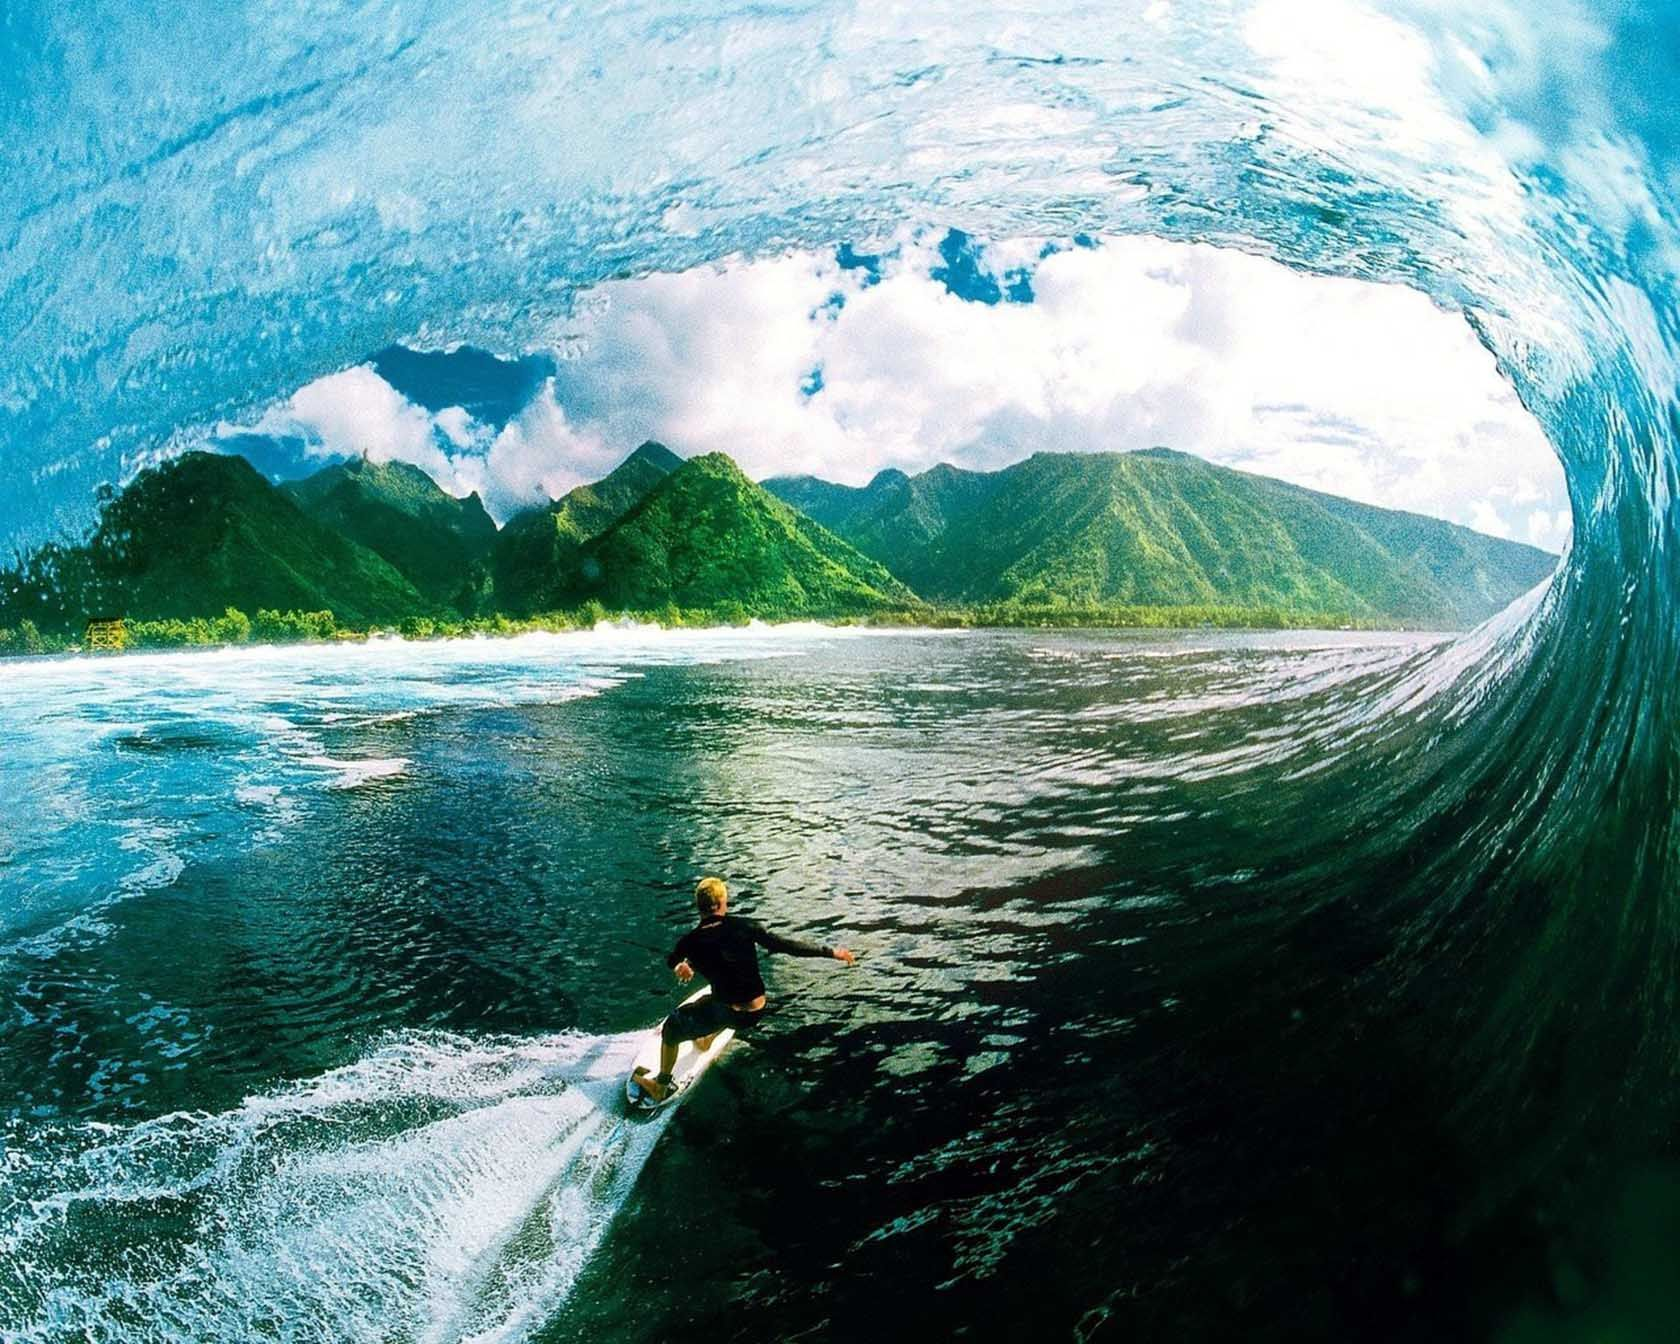 Surfer39s Warehouse Surfing wallpaper Surfing pictures Surf 1680x1344